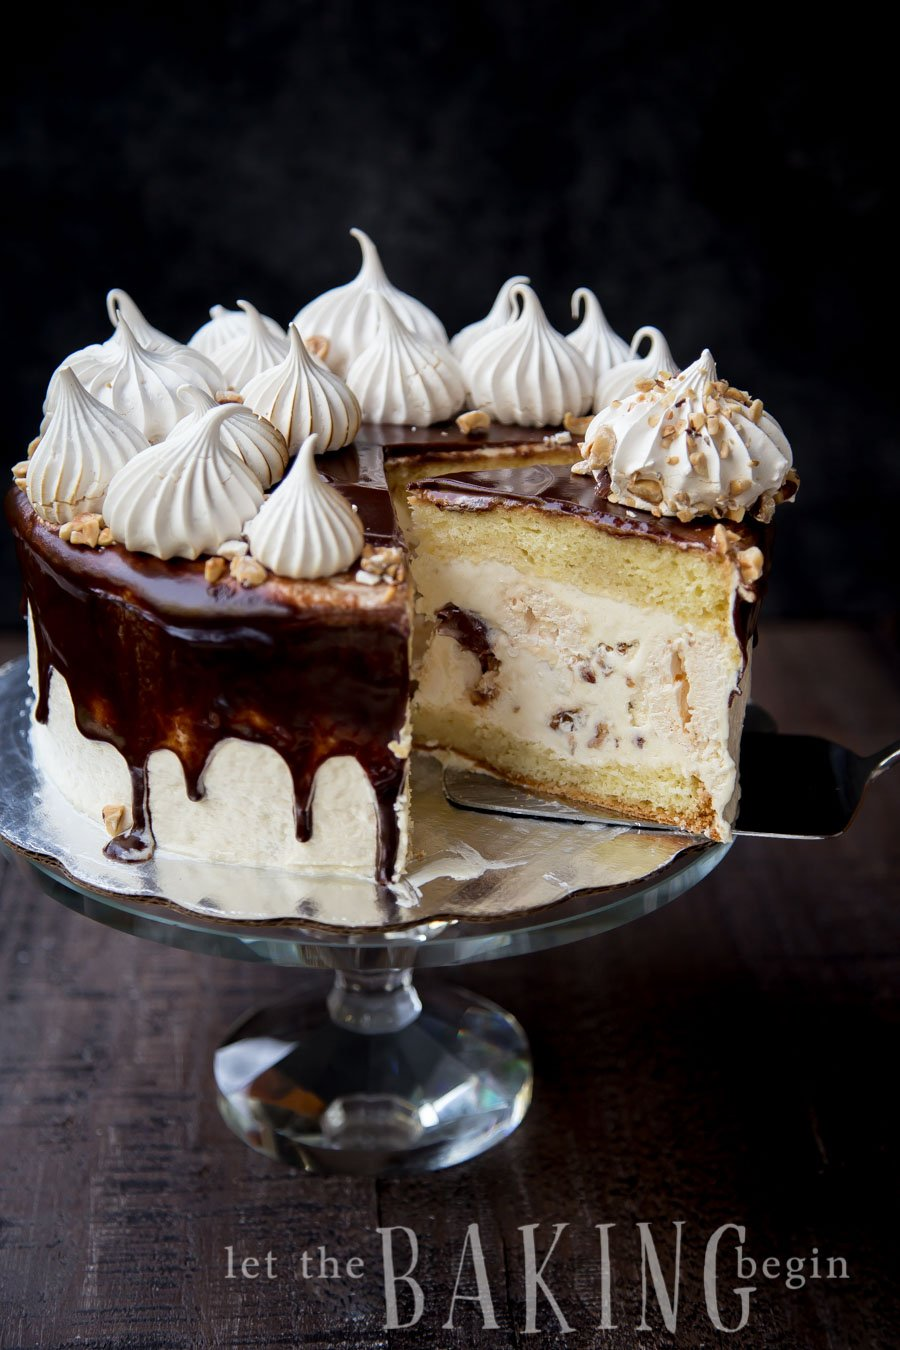 Kiev cake with a slice missing to see inside, topped with chocolate, half meringues, and hazelnuts on a platter.